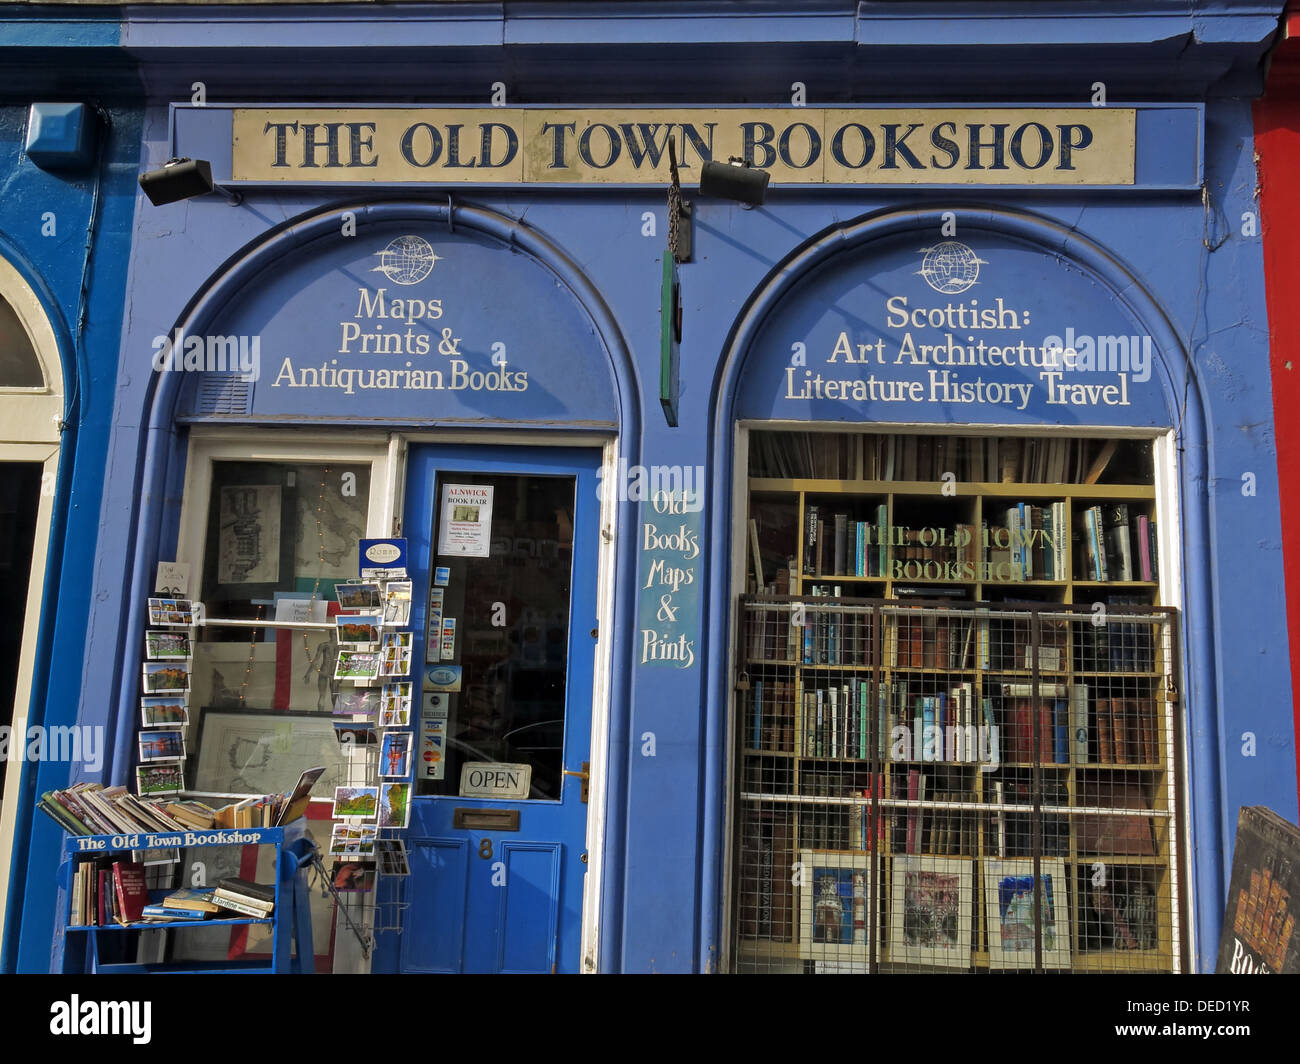 Scotland,UK,shop,book,interesting,shops,capital,city,tourist,tourism,maps,old,magazines,buy,or,sell,EH12HG,EH1,2HG,blue,door,cute,quaint,retailer,retail,fun,local,novels,guide,guides,library,libraries,seller,bookseller,Scottish,art,architecture,history,historic,travel,open,gotonysmith,OLDtown,Buy Pictures of,Buy Images Of